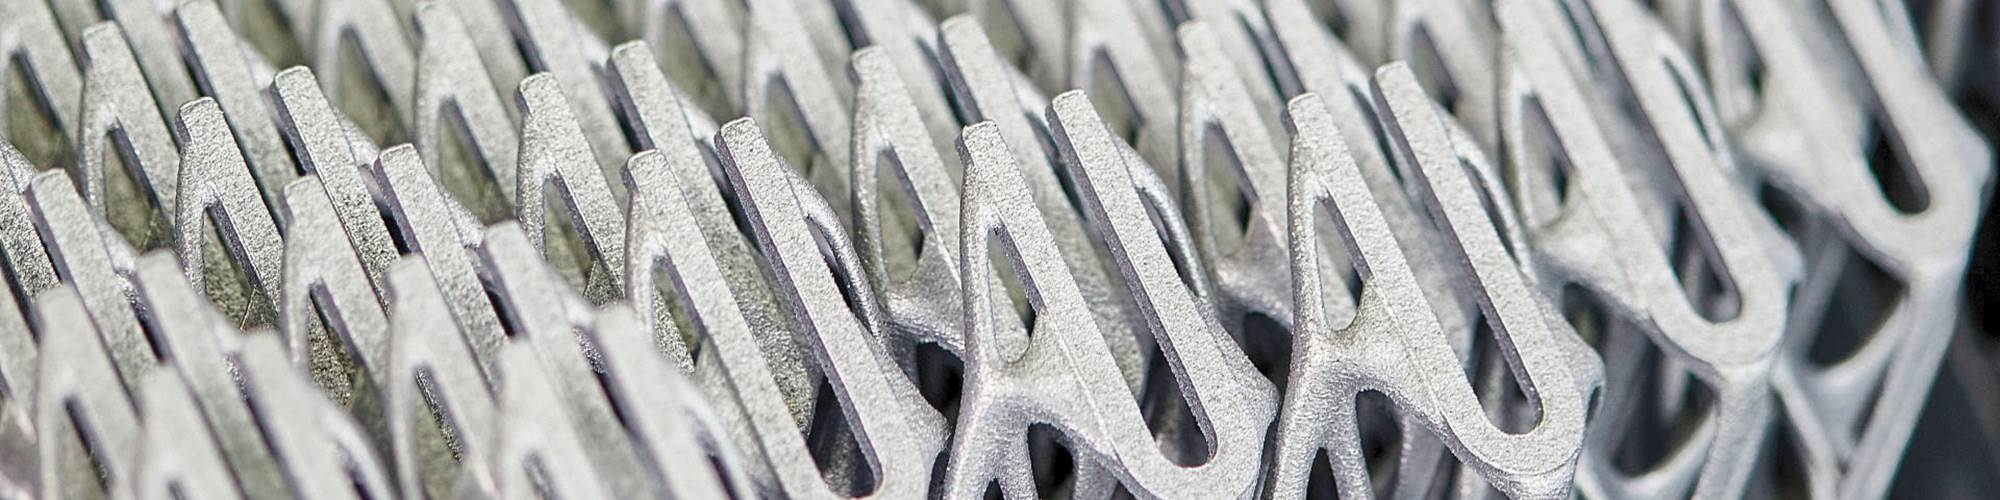 Additive series production at BMW Group, the coordinating organization of the IDAM project, which will leverage automation and Industrial Internet of Things technology to improve metal additive production throughput.